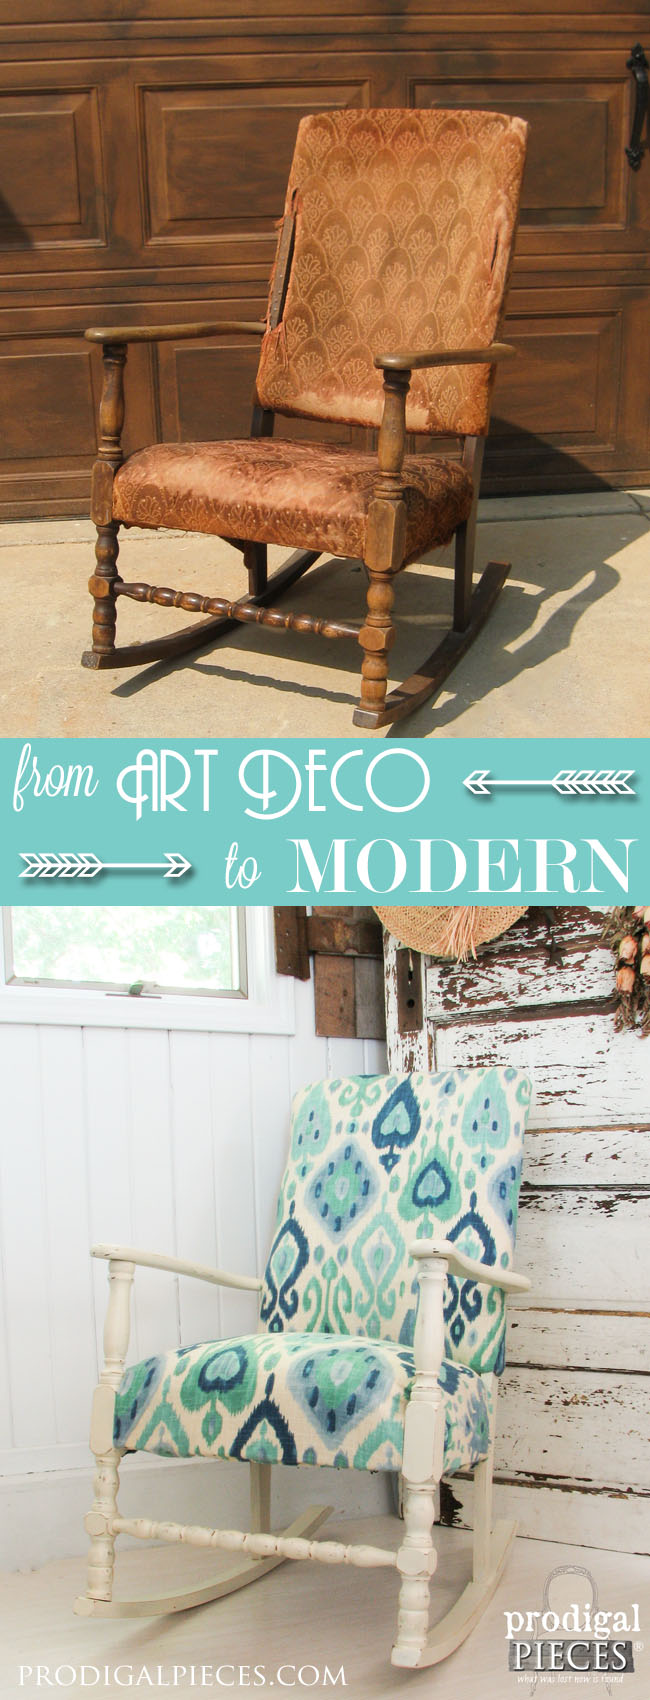 Worn out Art Deco Rocking Chair Gets a Modern Ikat Facelift by Prodigal Pieces | prodigalpieces.com